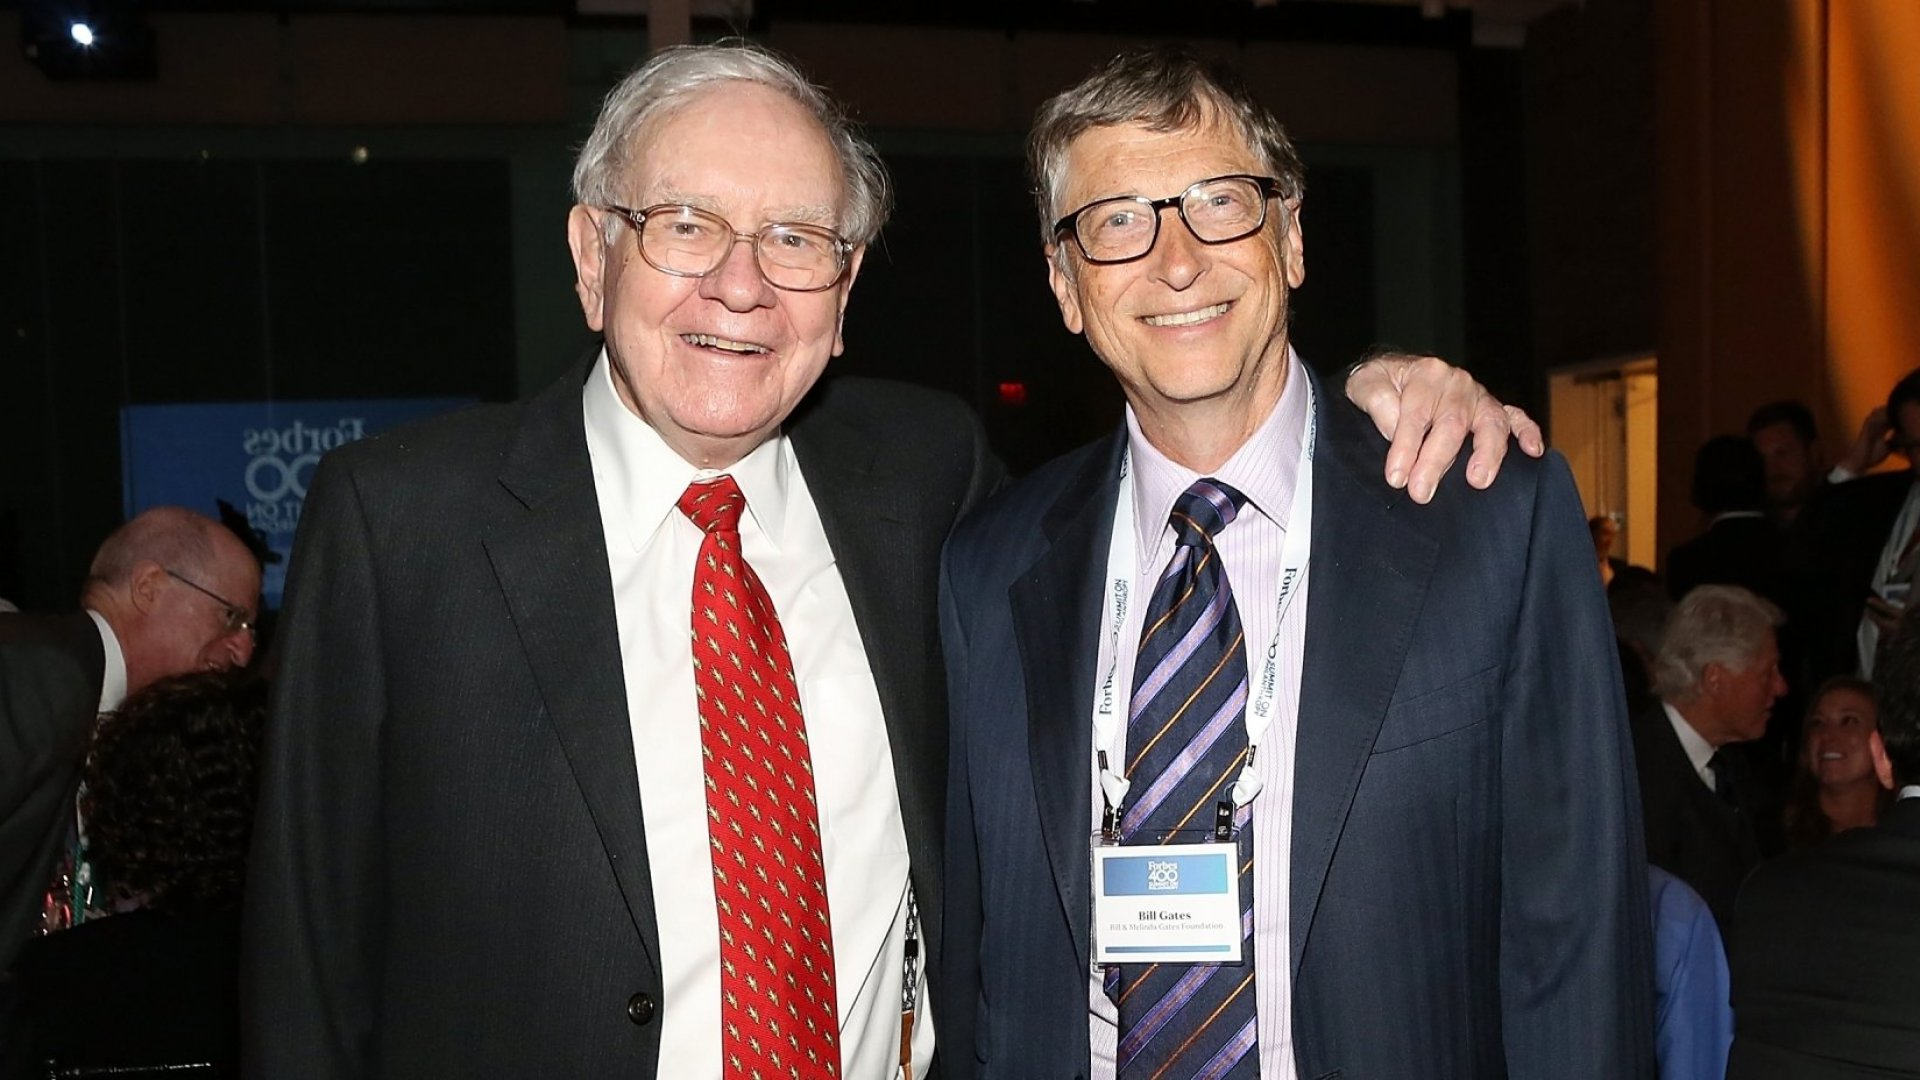 Warren Buffett and Bill Gates Just Worked a Dairy Queen Shift Together. A Lesson in Thinking Differently Followed